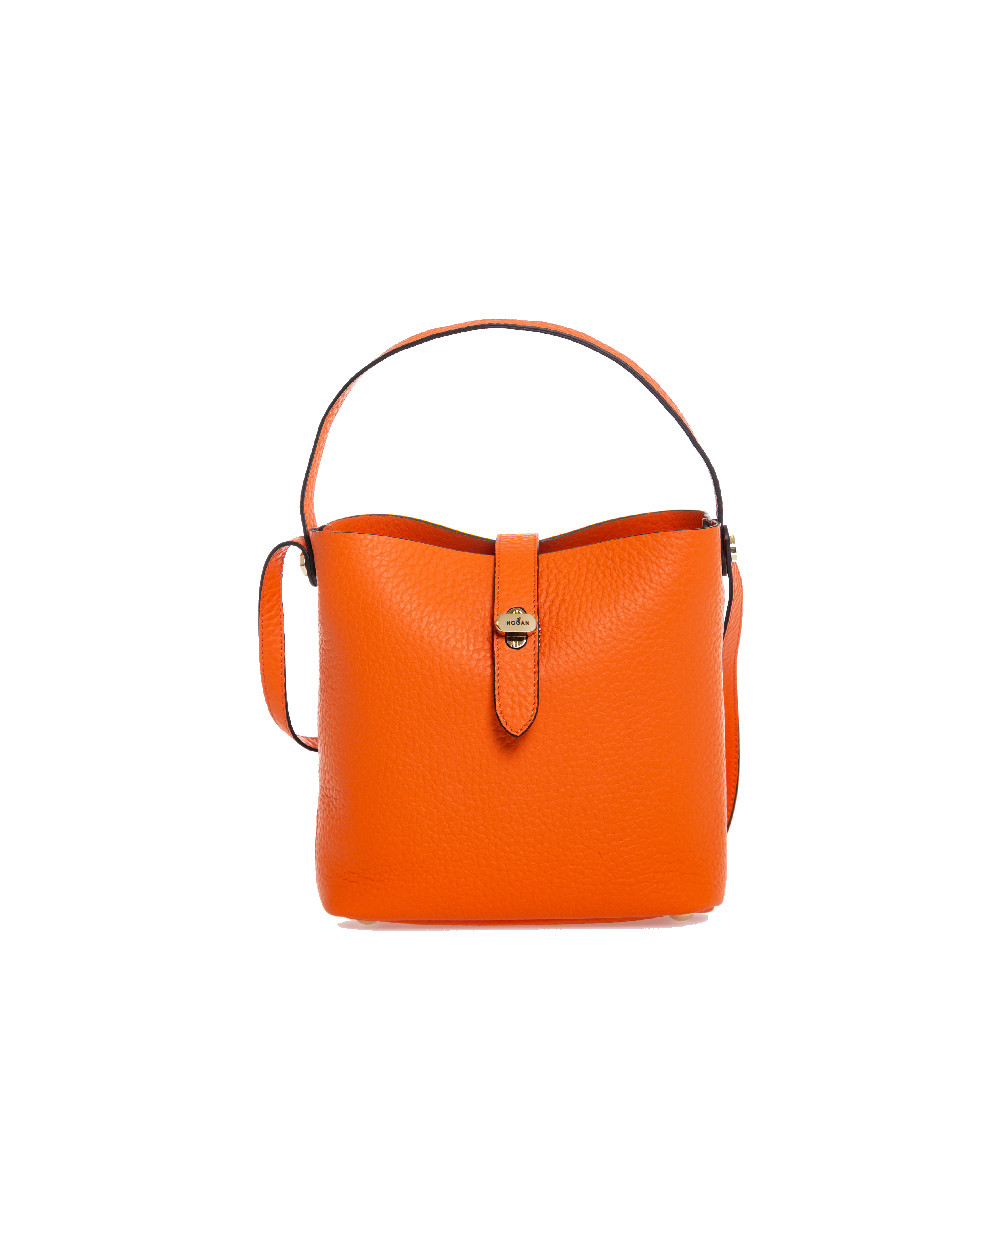 "Orange bag ""hobo iconic Mini"" Hogan for women"